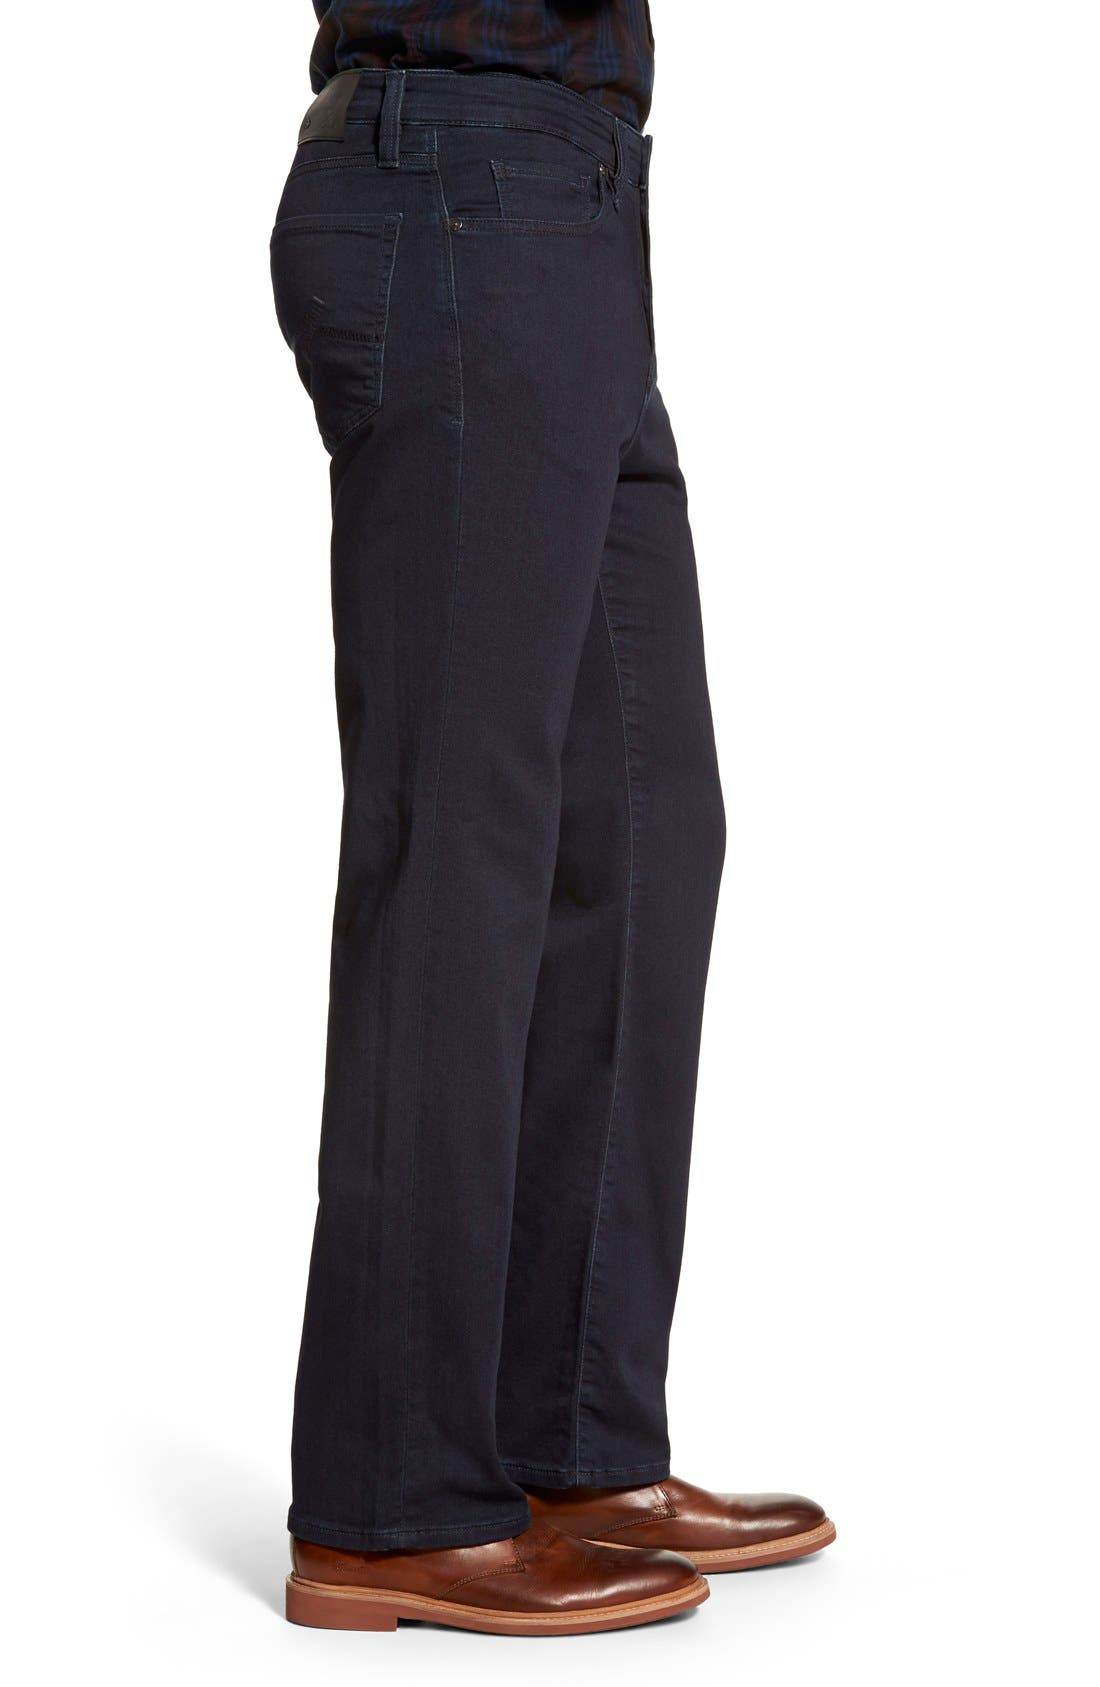 'Charisma' Relaxed Fit Jeans,                             Alternate thumbnail 6, color,                             RINSE SPORTY